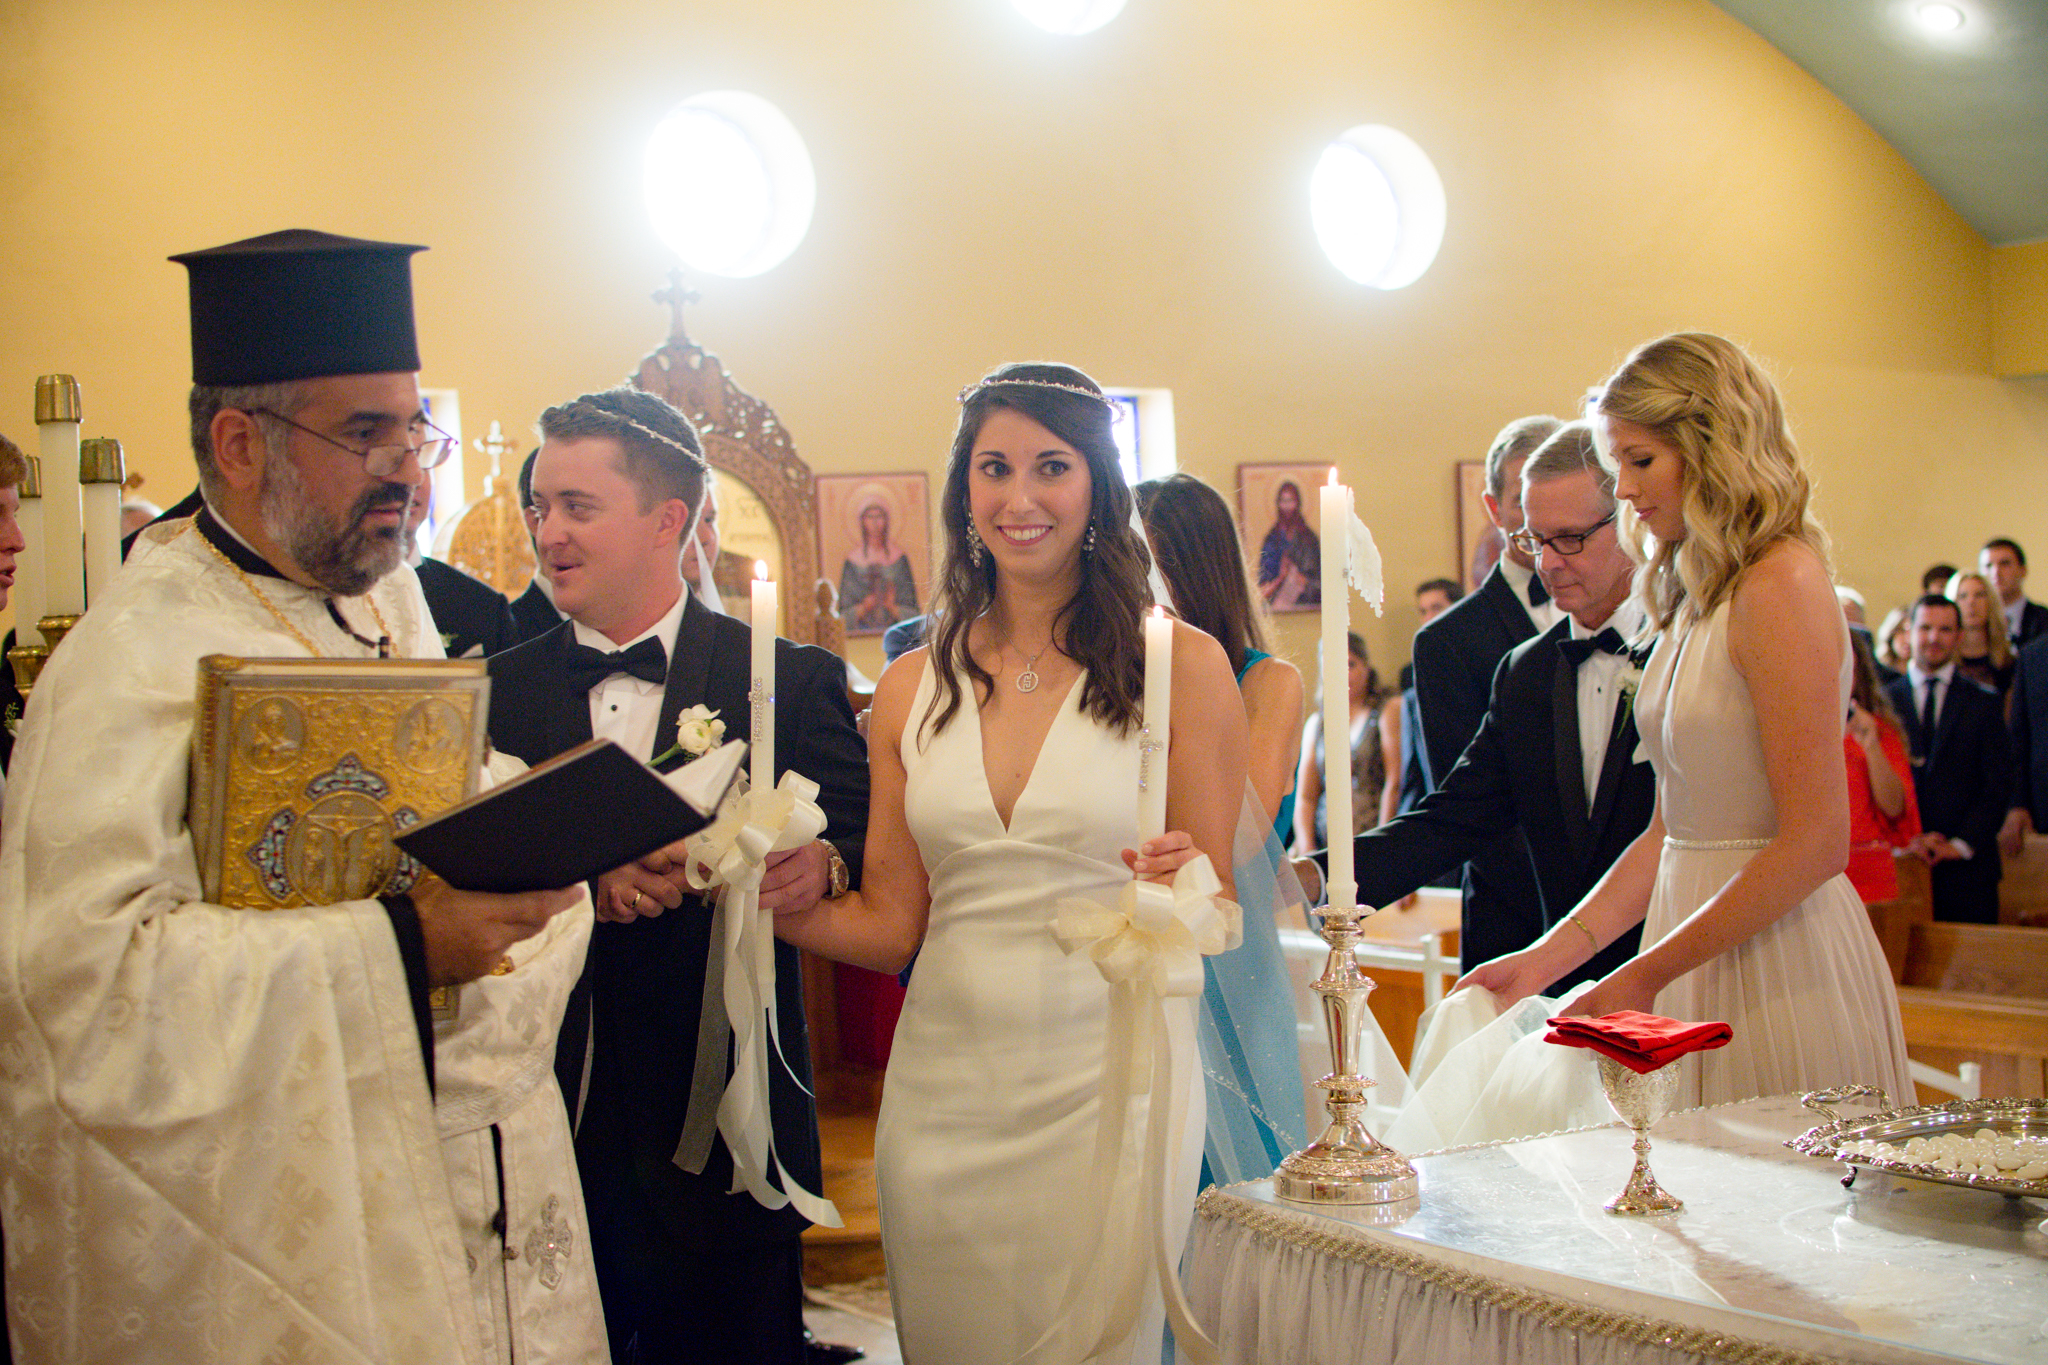 greek orthodox wedding (63 of 118).JPG